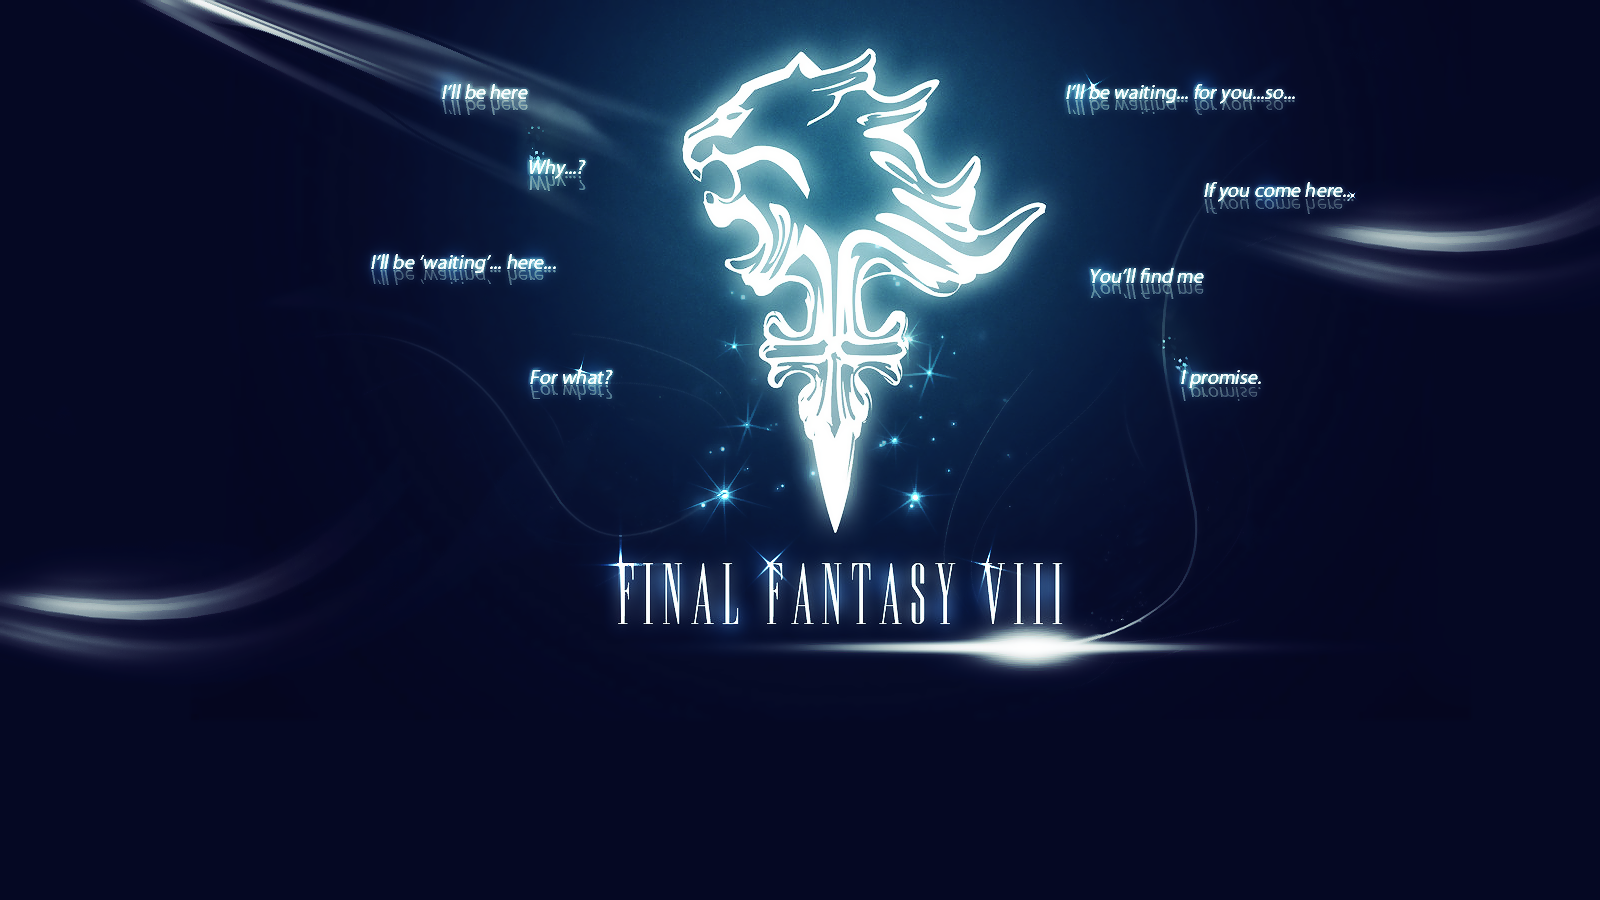 wallpaper final fantasy viii by arcaste fan art wallpaper games 2013 1600x900